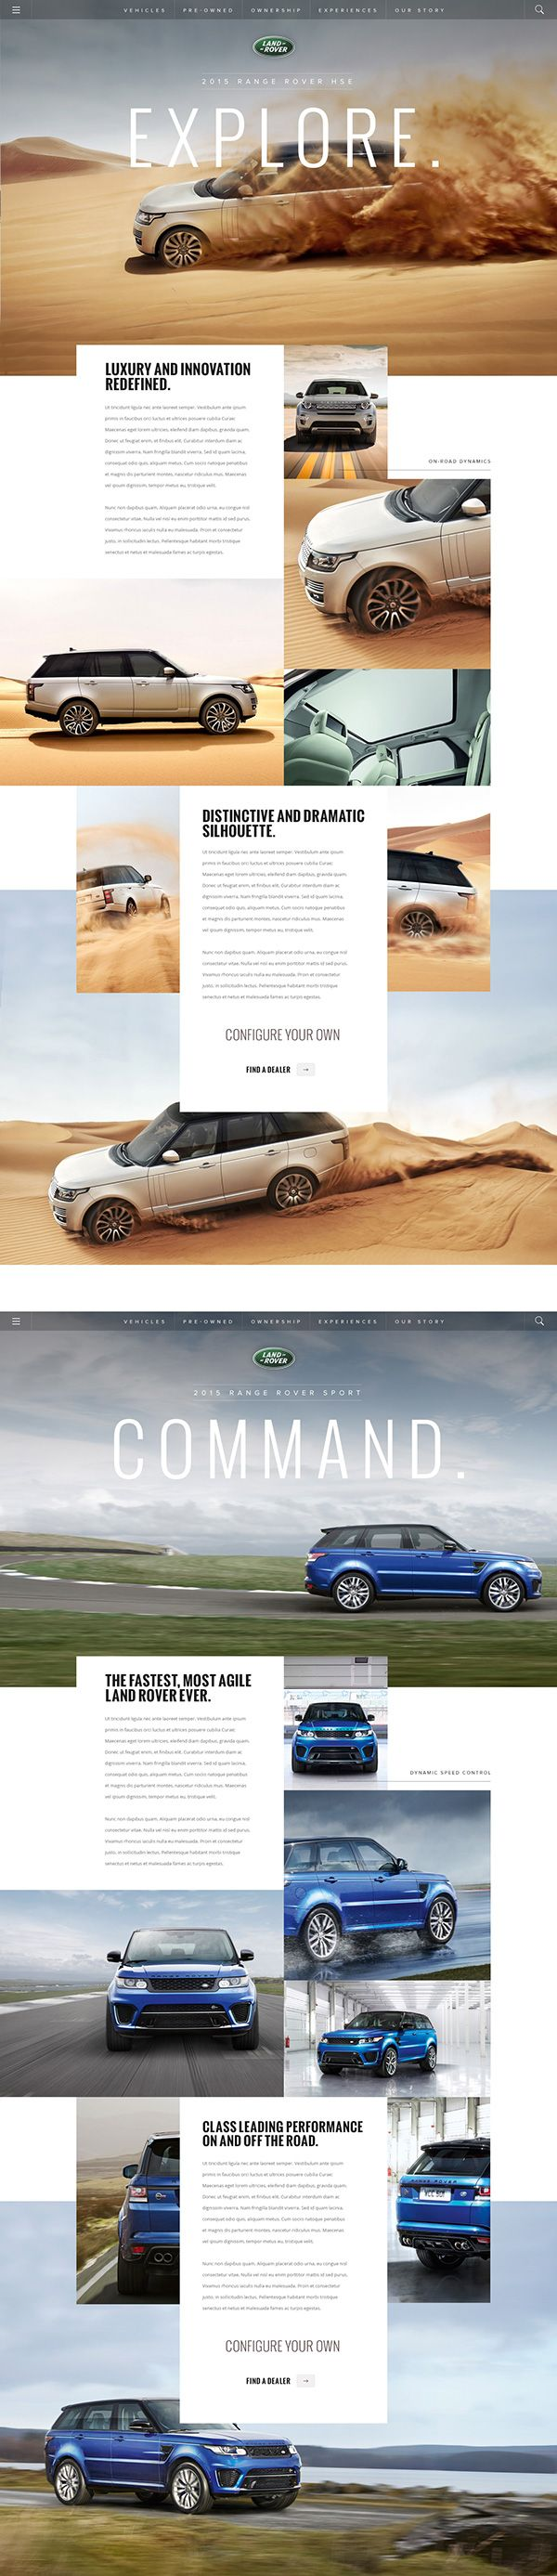 LandRover.com on Behance. When looking for website design inspiration, look toward the best brands.